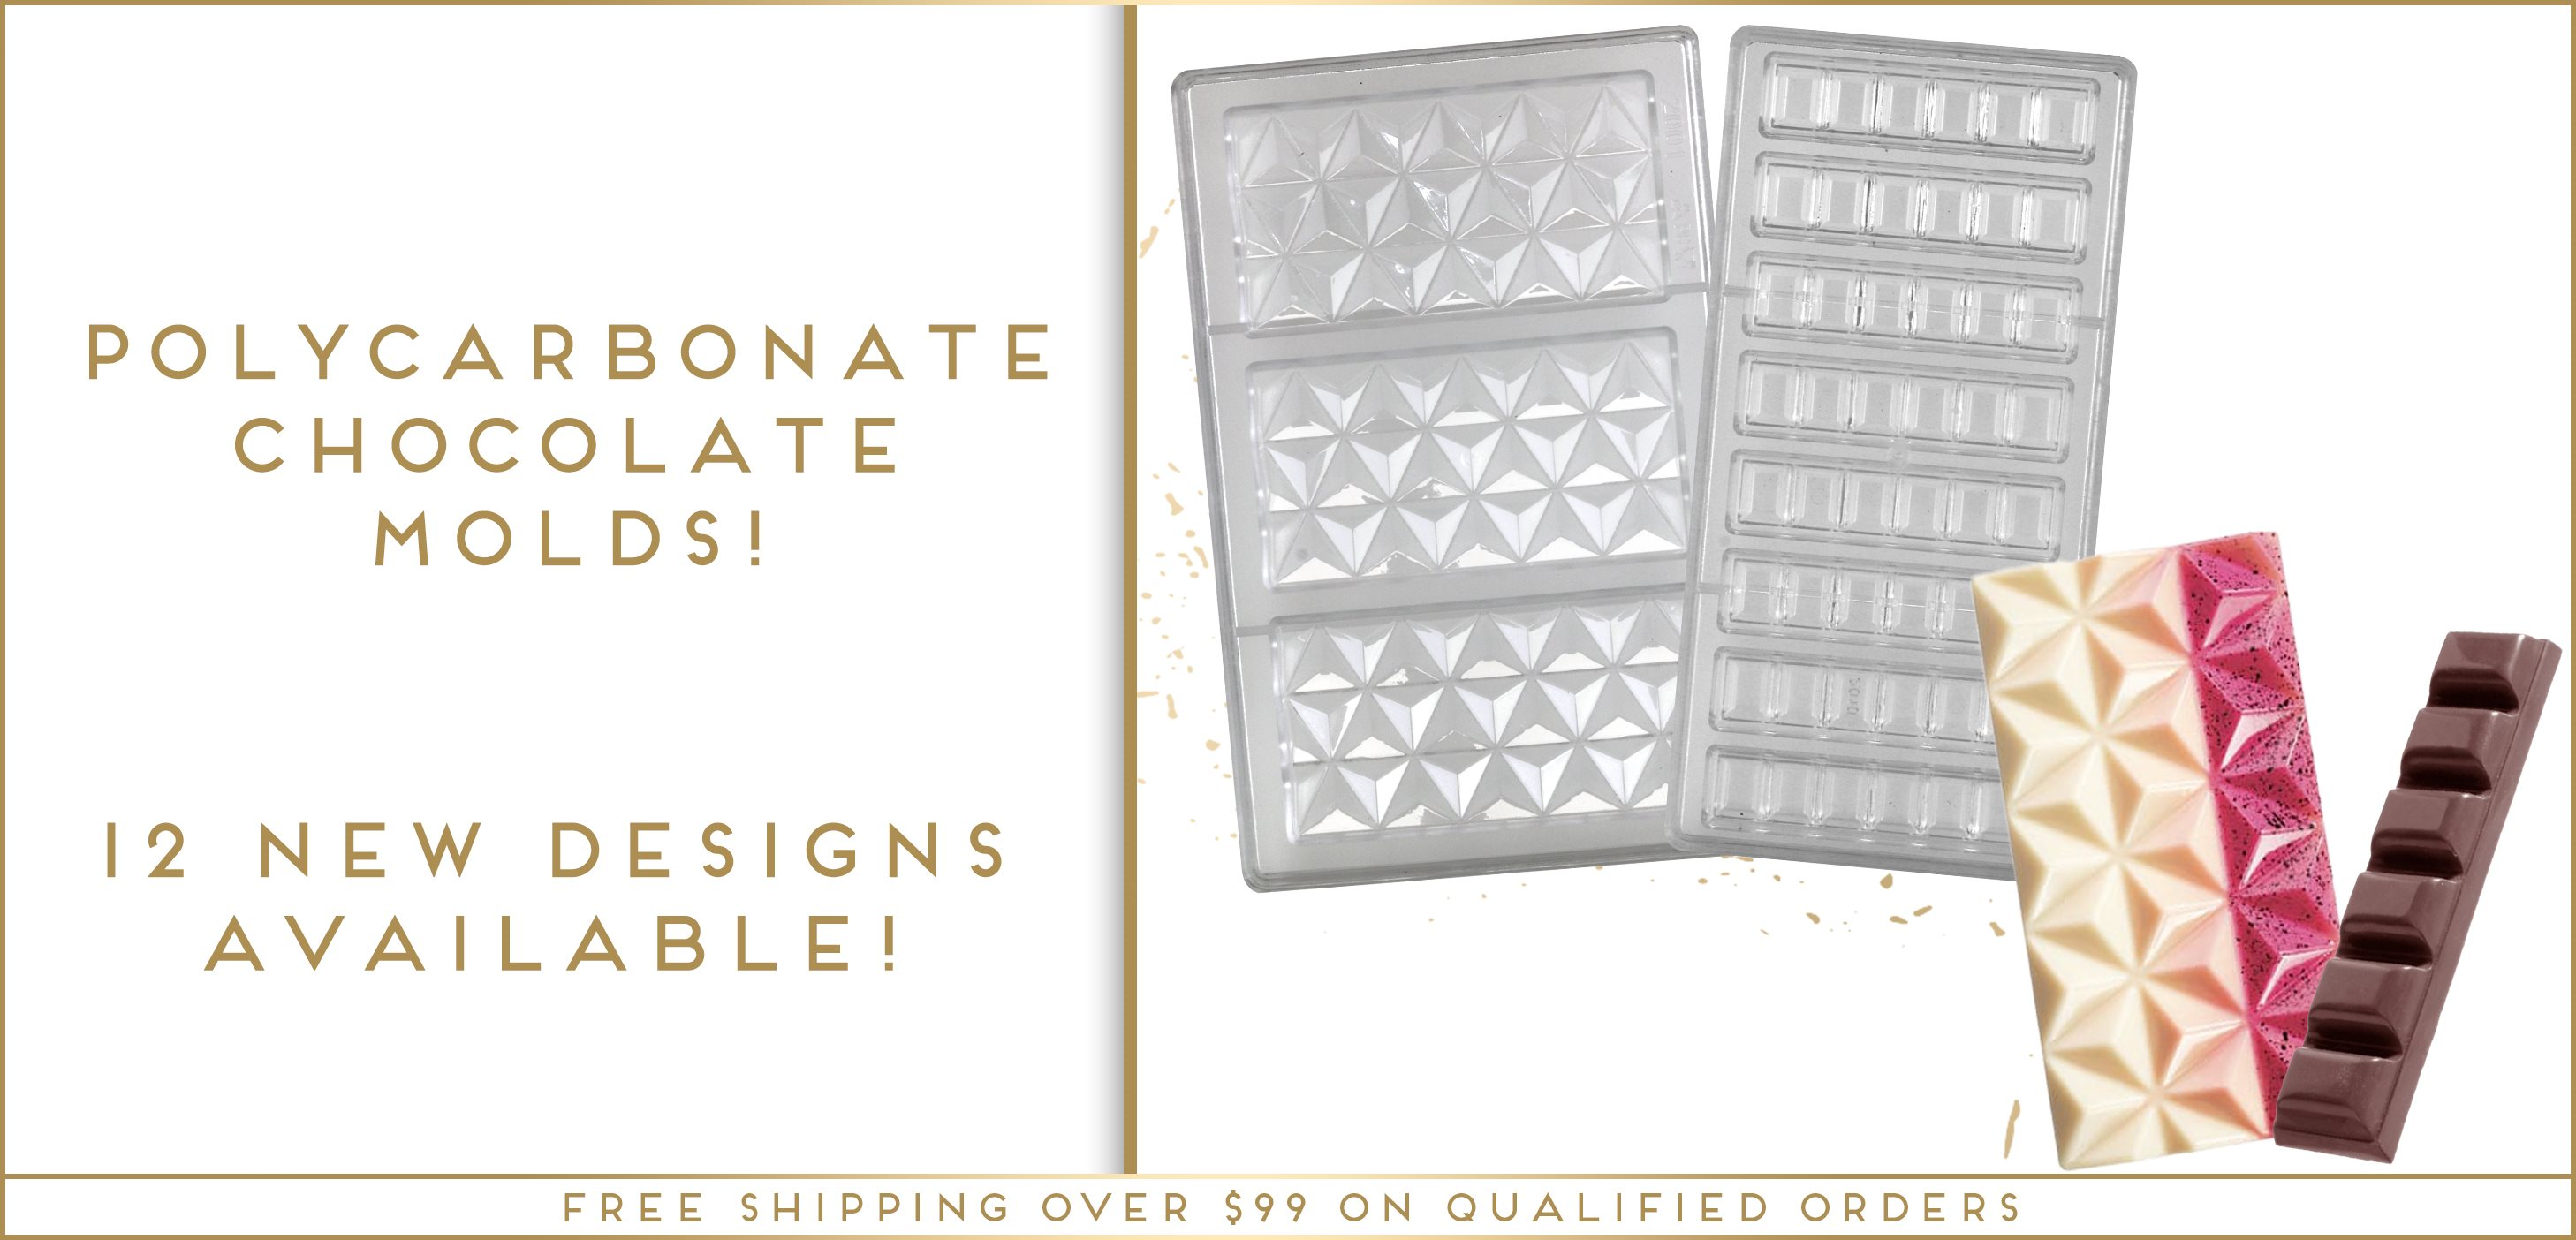 Polycarbonate Chocolate Molds